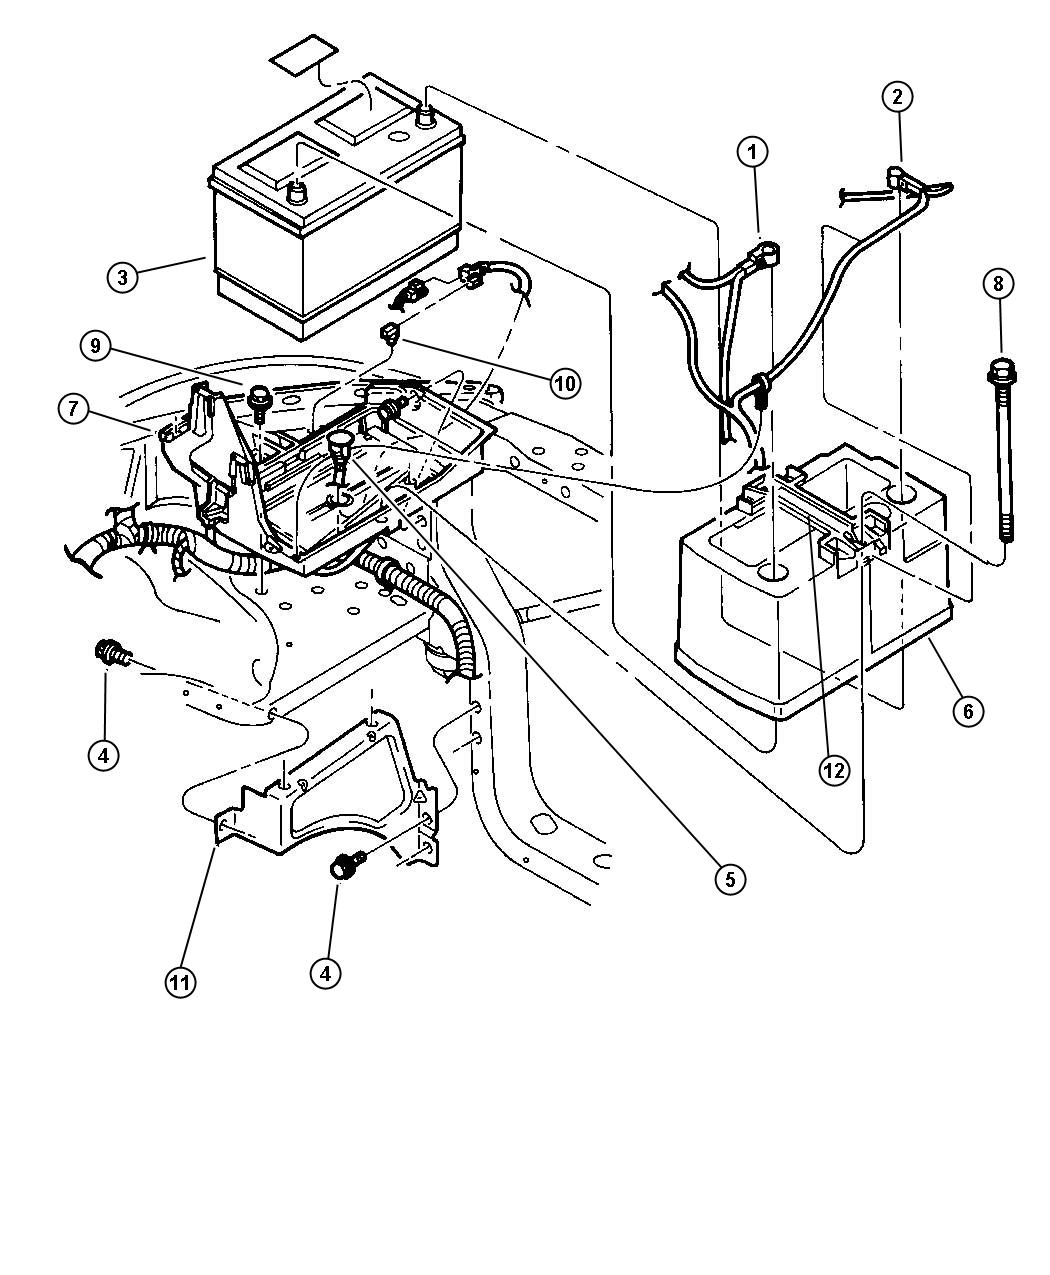 Dodge Durango Battery Tray And Cables